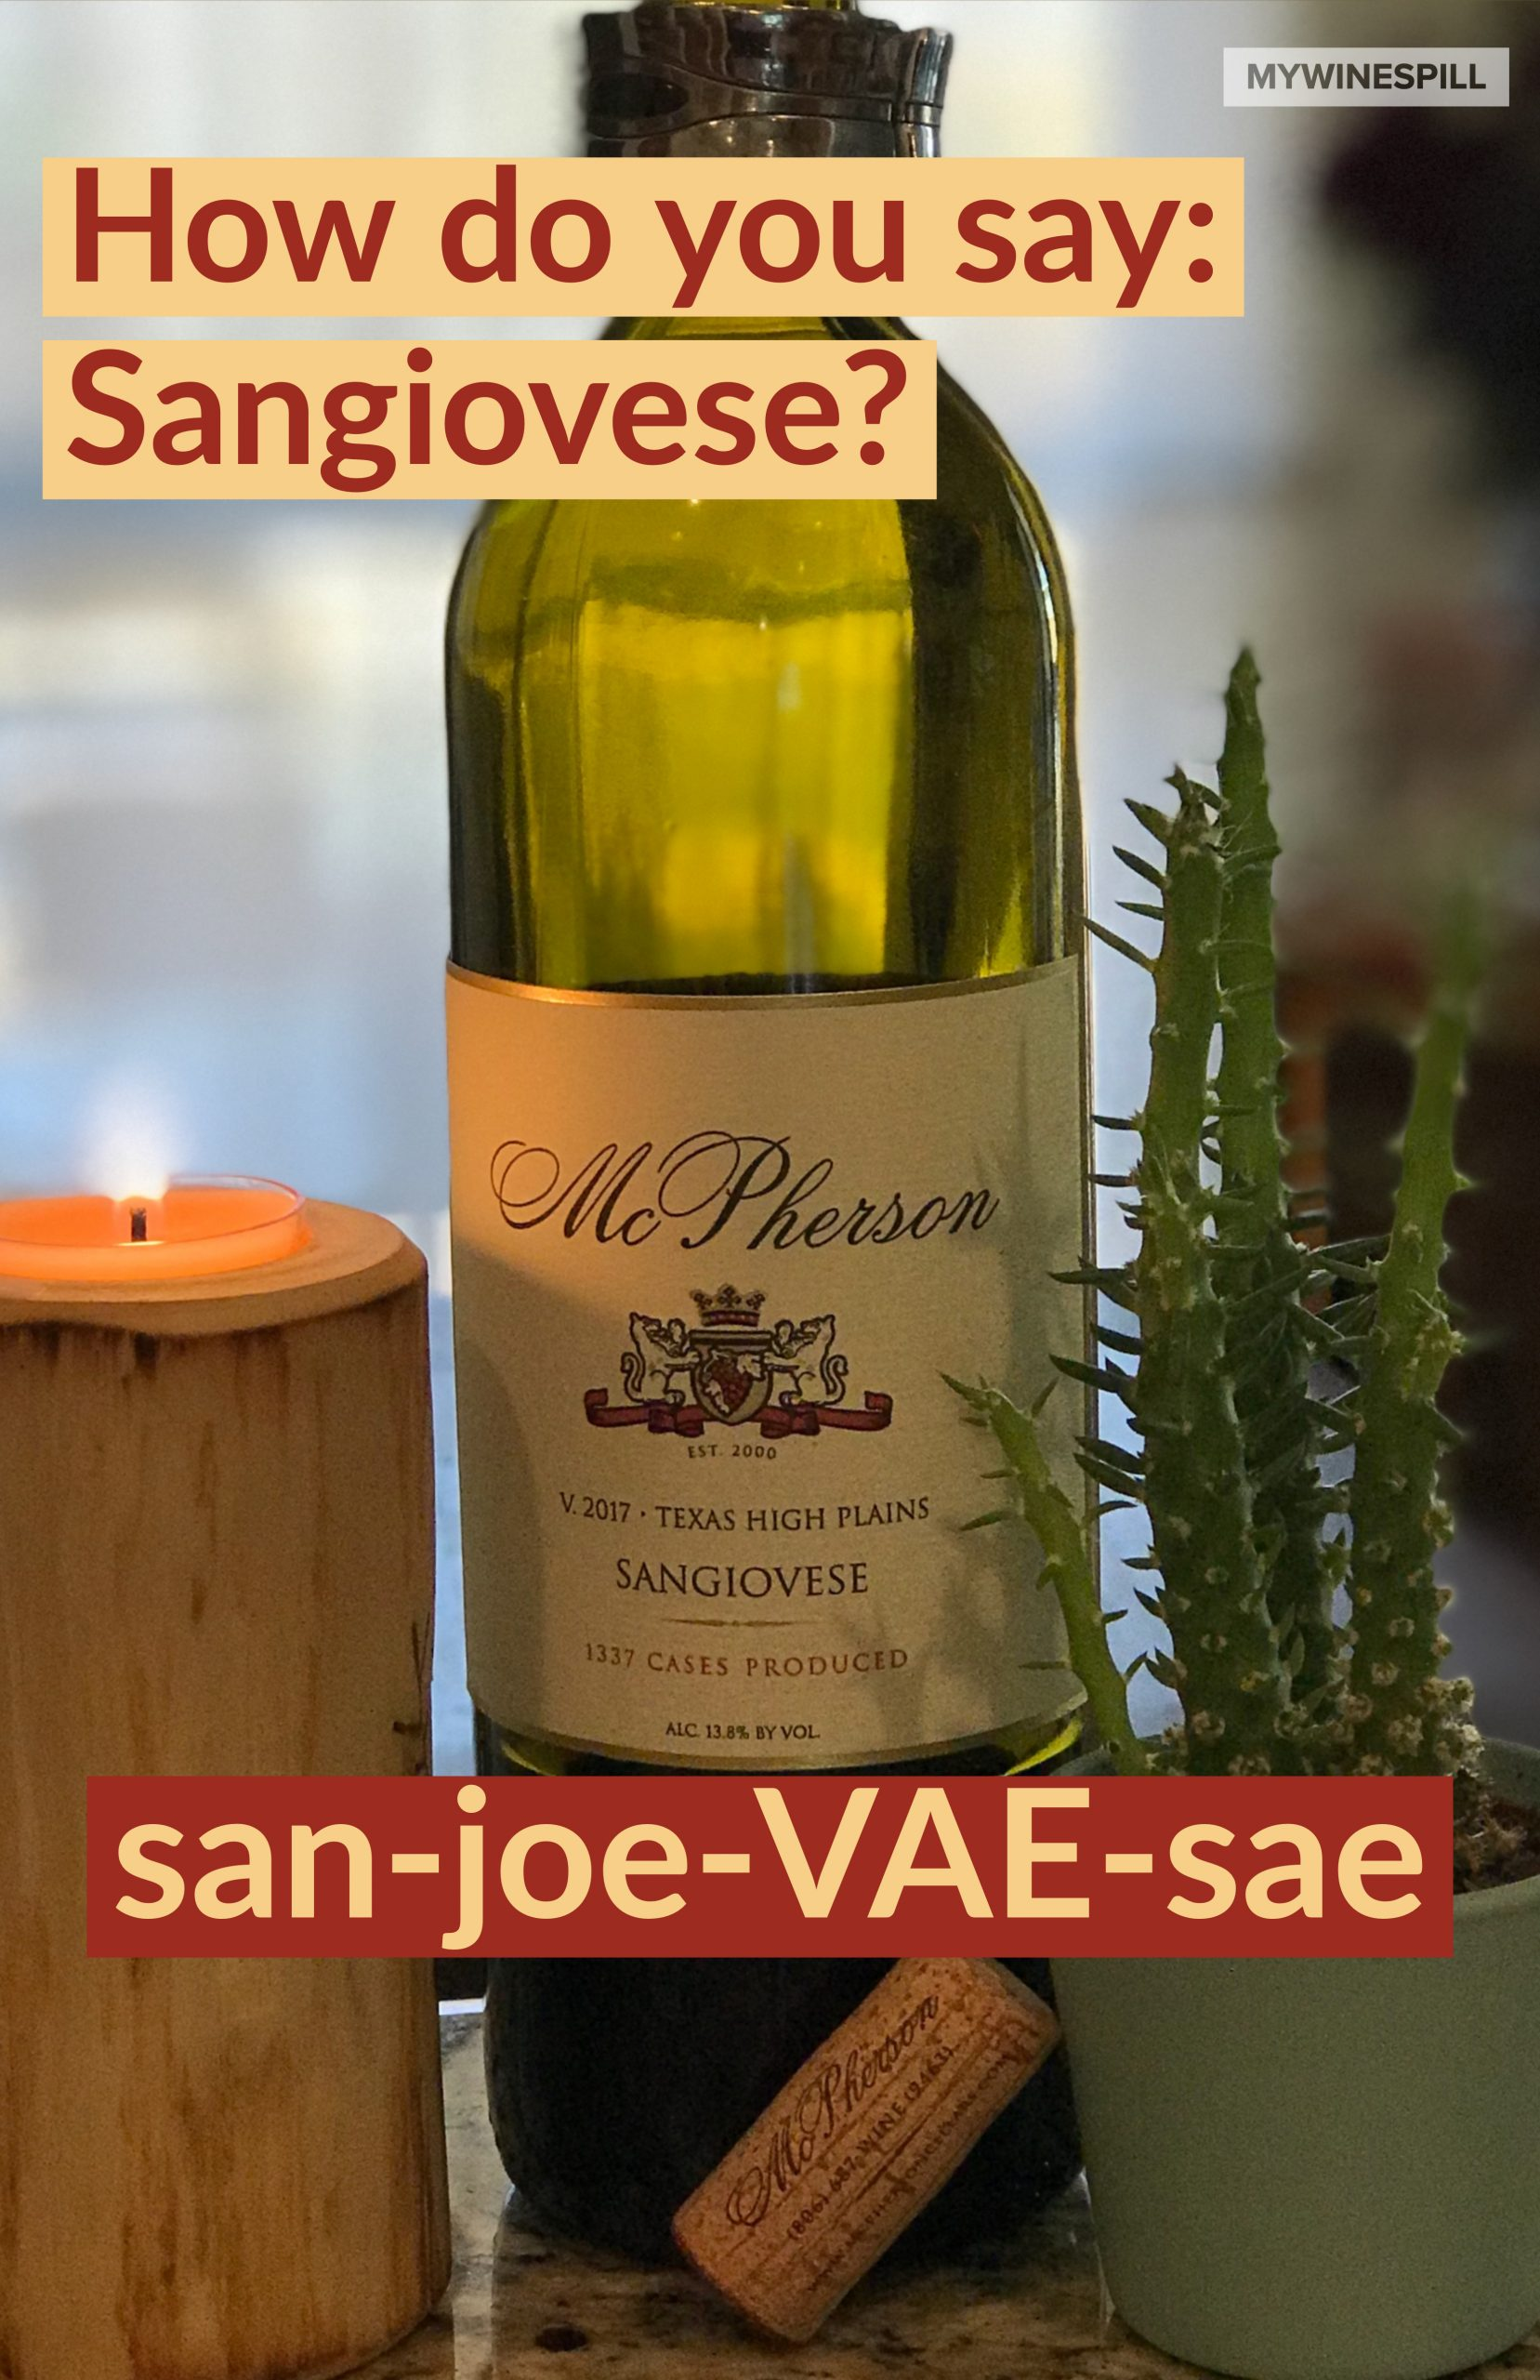 How to pronounce Sangiovese.